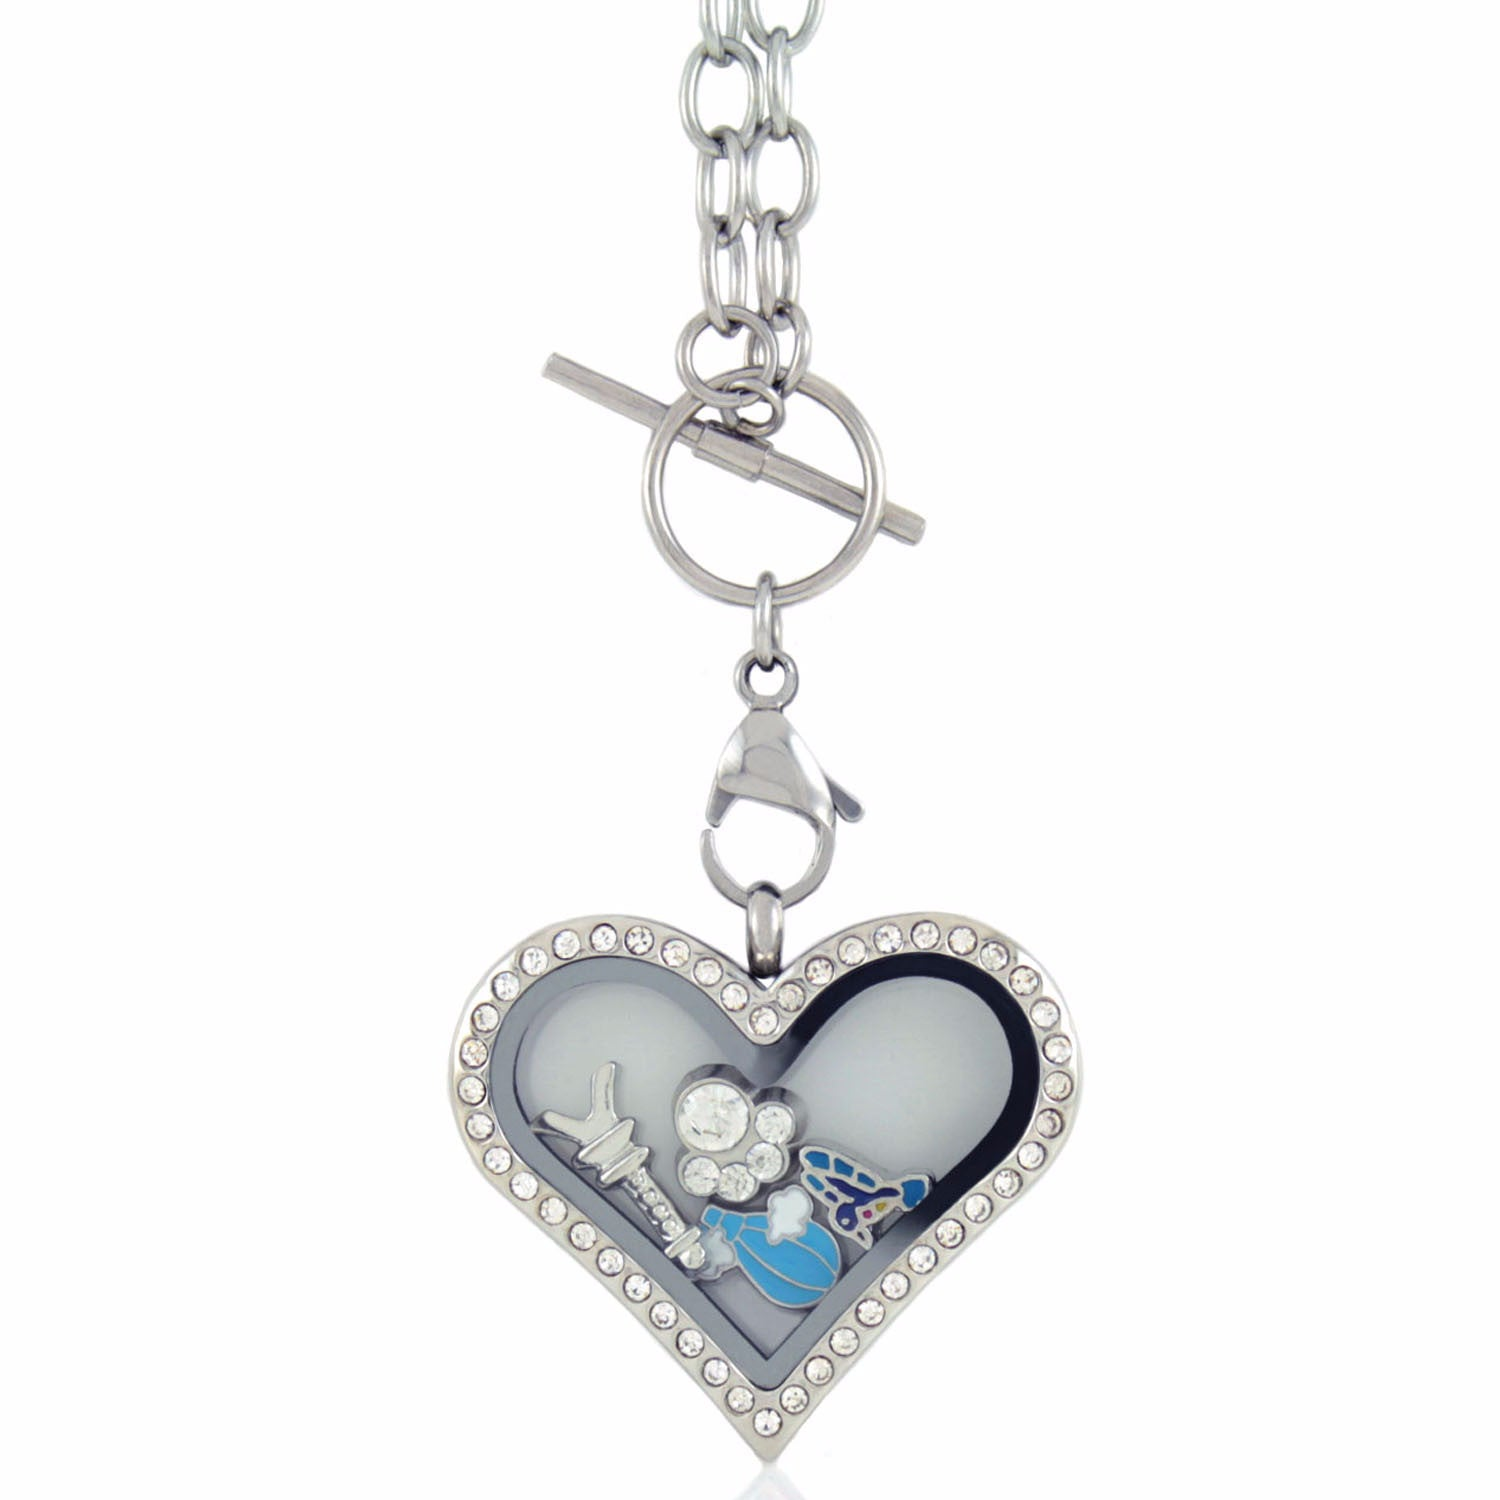 Floating Locket Necklace with 6 Charms and Matching Toggle Chain (Rhinestone Heart Large)